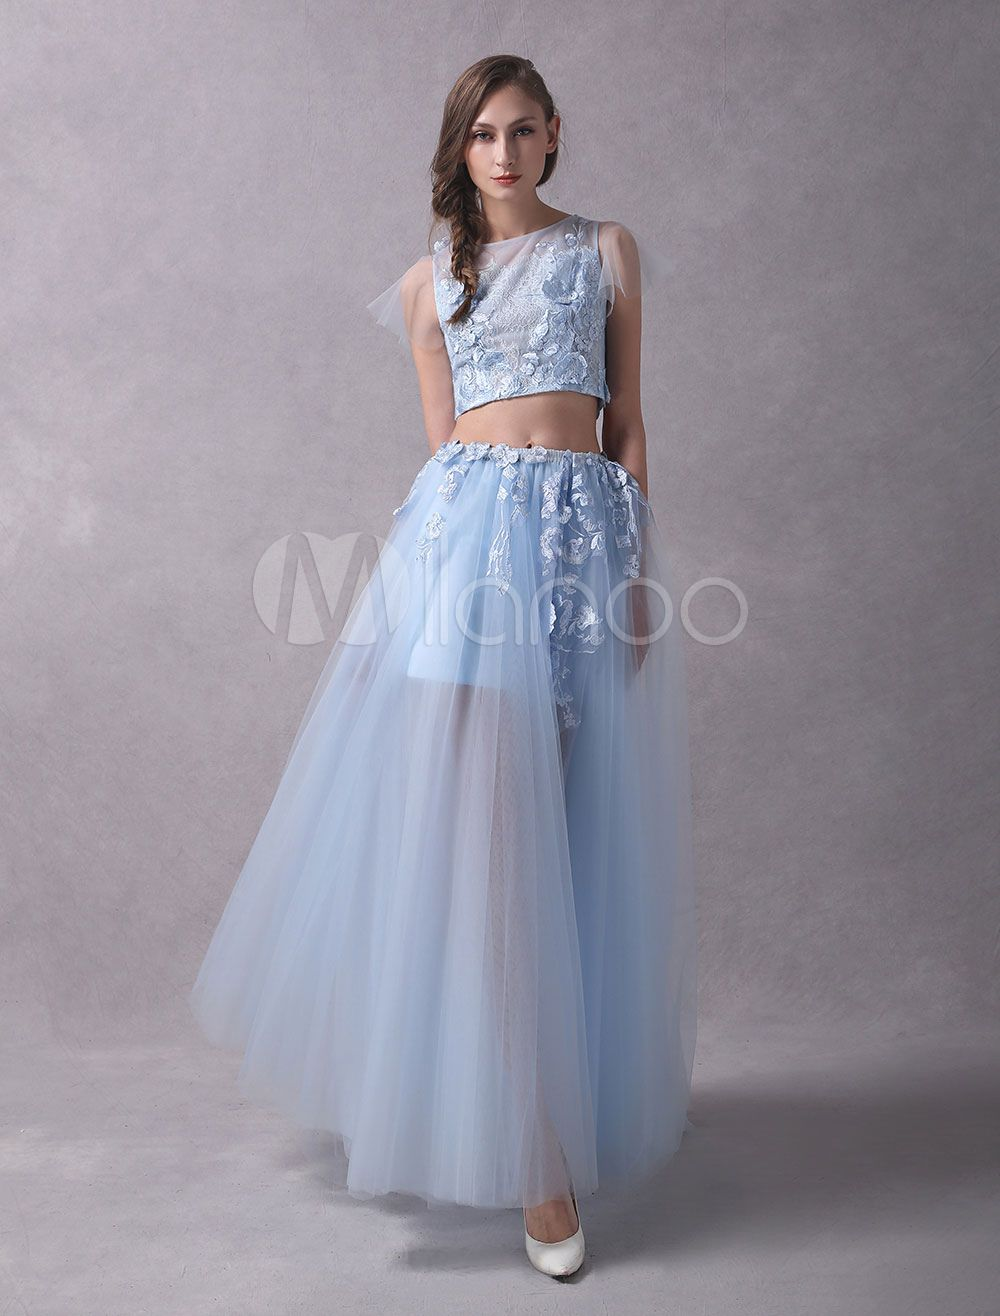 b36fef8a4f80b Prom Dresses Two Piece Lace Flowers Applique Short Sleeve Tulle Baby Blue  Party Dresses #Lace, #Flowers, #Applique